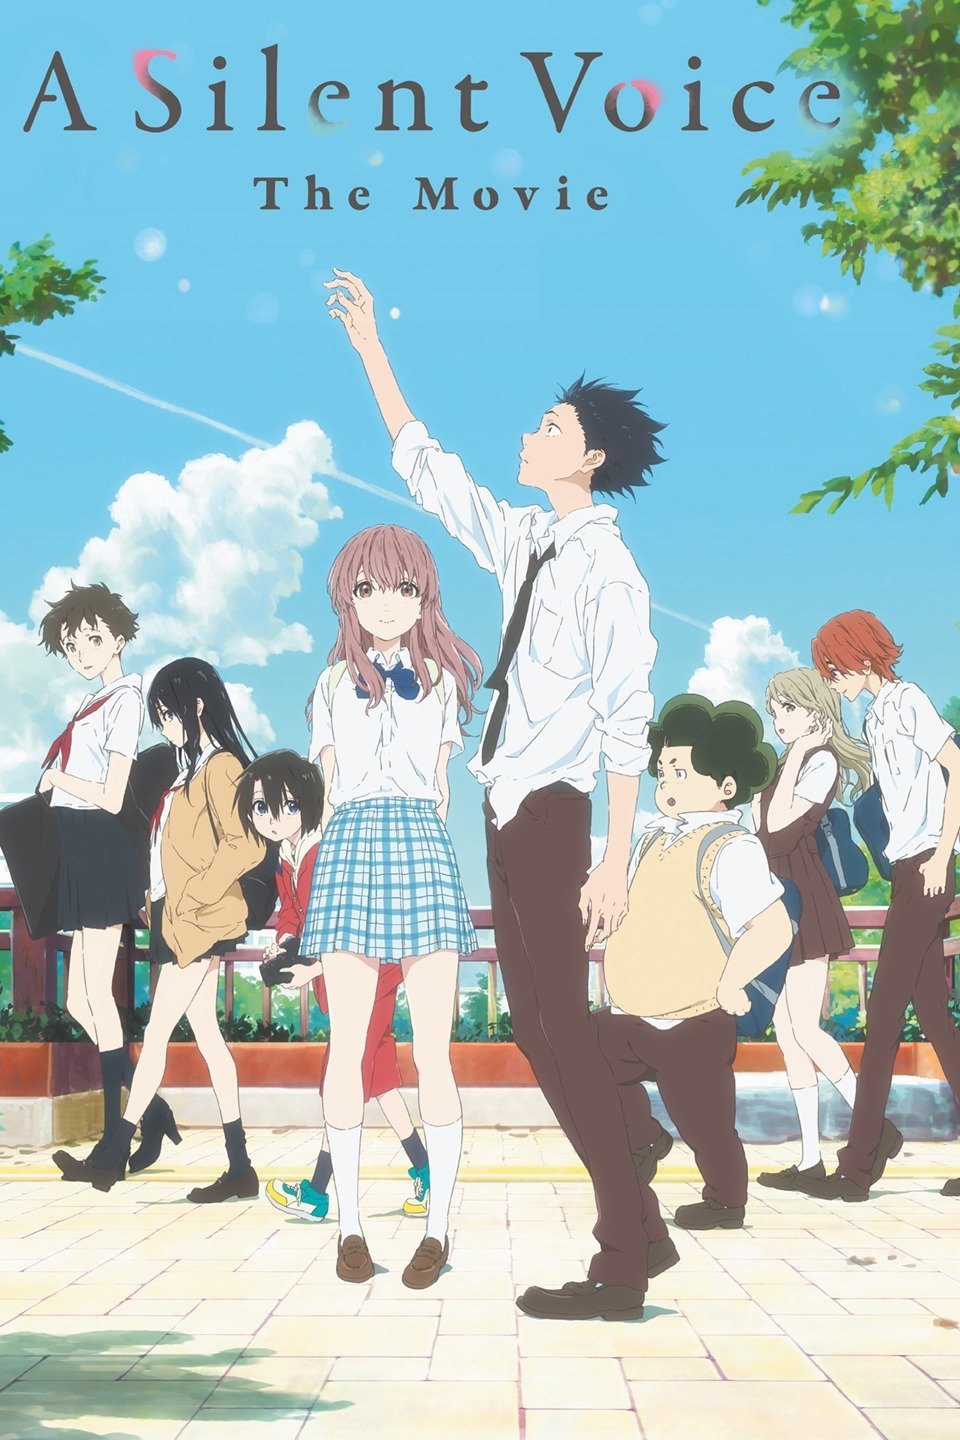 Film Review: A Silent Voice